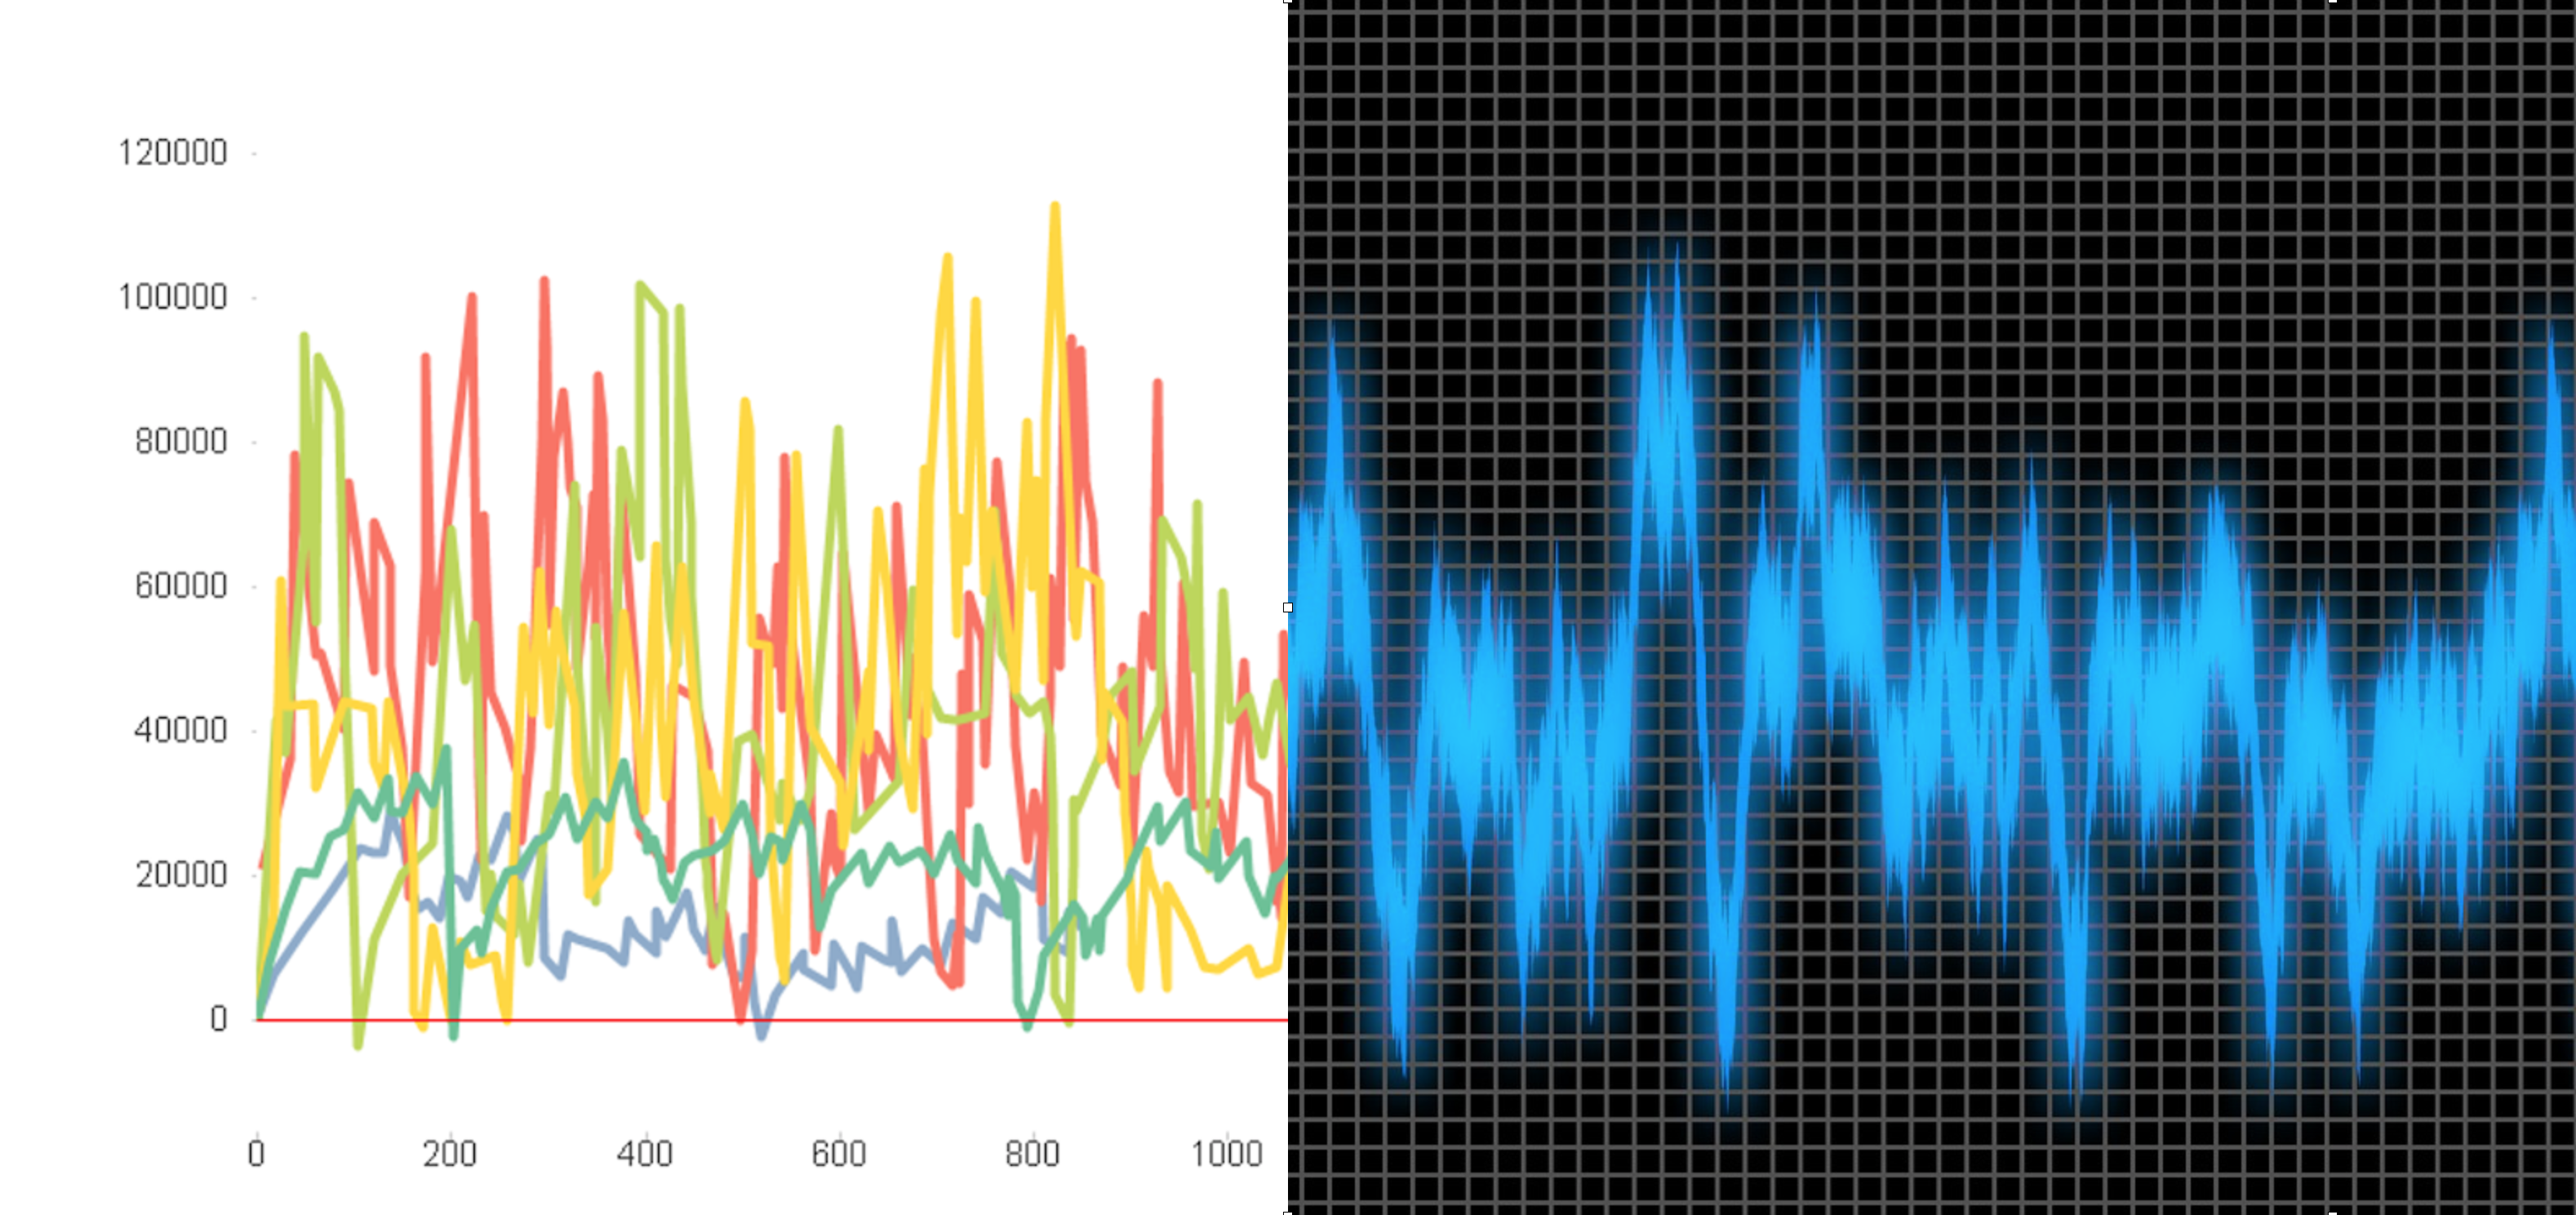 Left: Current Account Balances, by the Author. Right: Noise Sound Waves. Image by Pete Linforth from Pixabay.